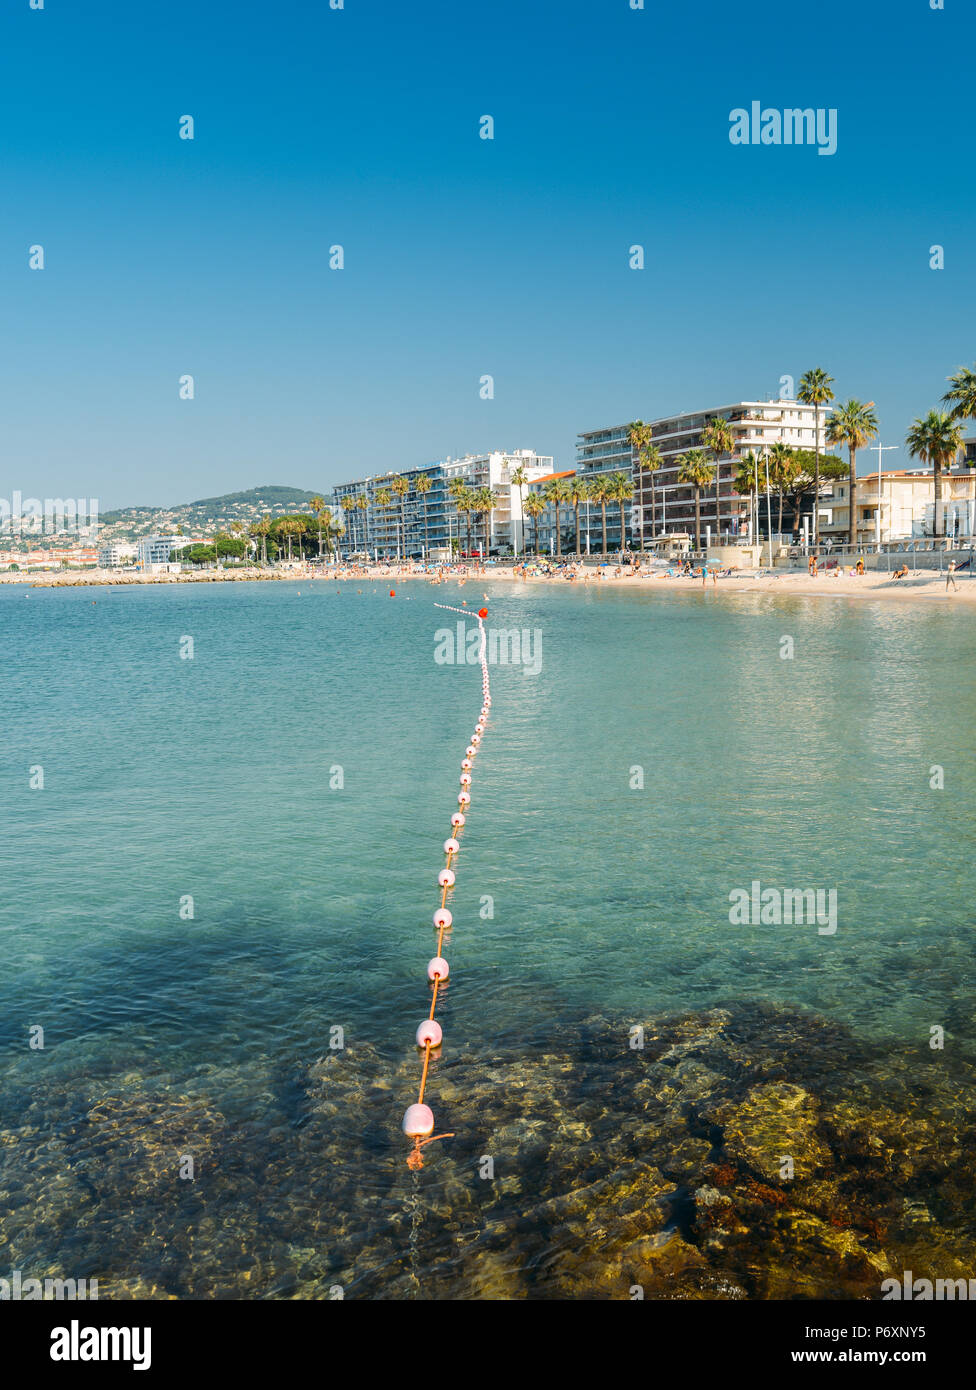 Early morning sun bathers and swimming at the Juan les Pins beach, a popular resort destination on the Mediterranean Stock Photo